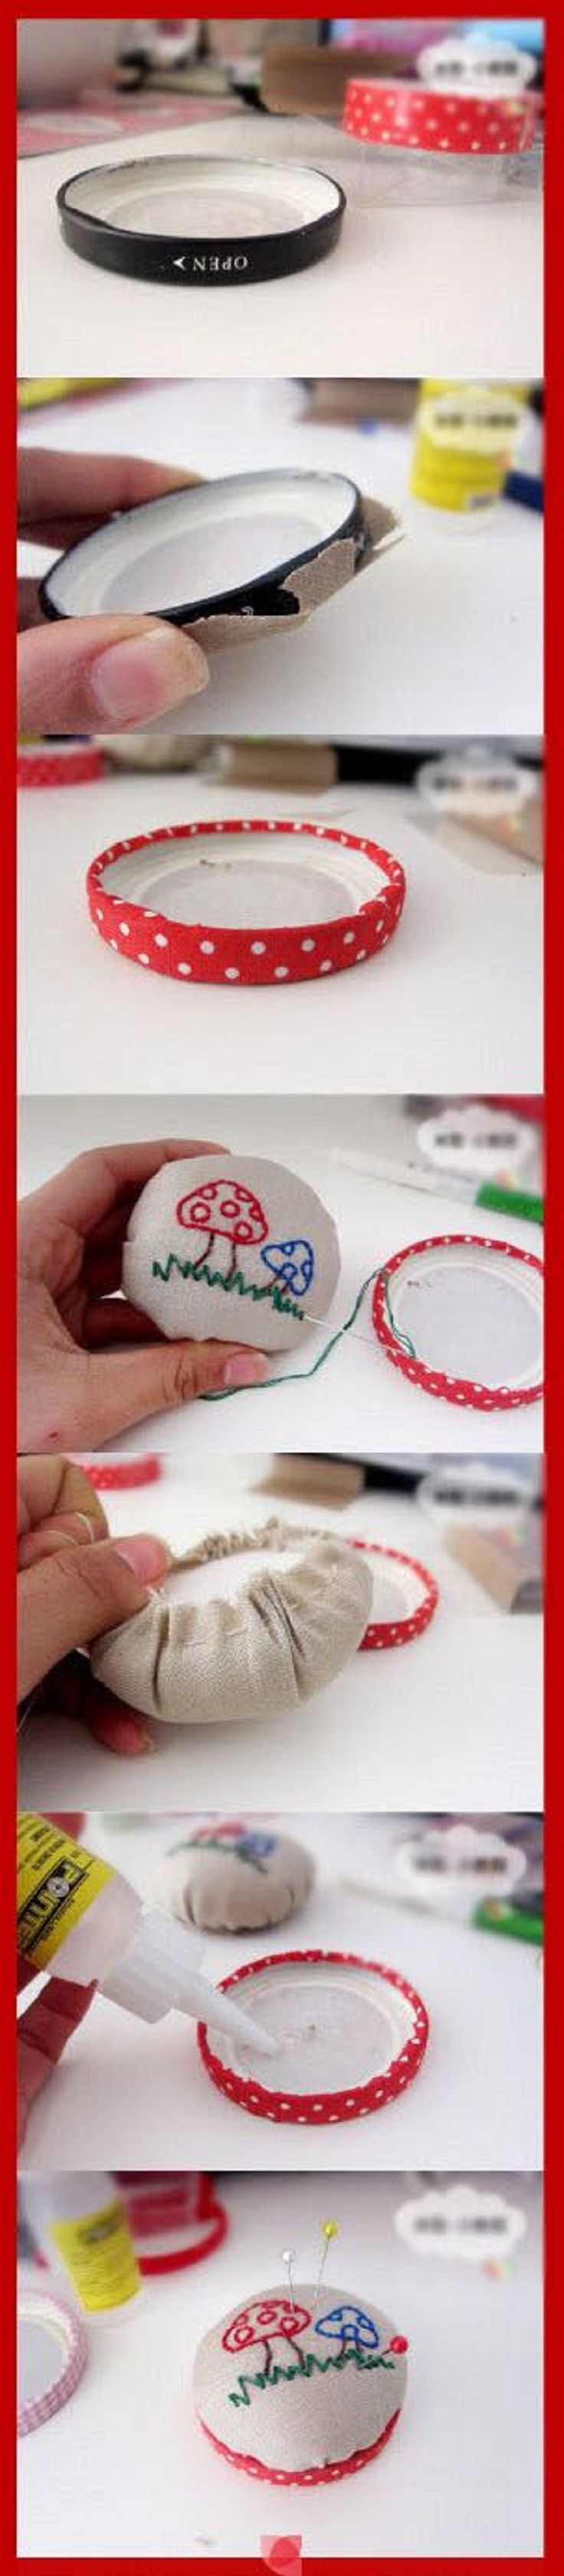 Make pincushion with jar lid. Top 10 DIY Sewing Projects